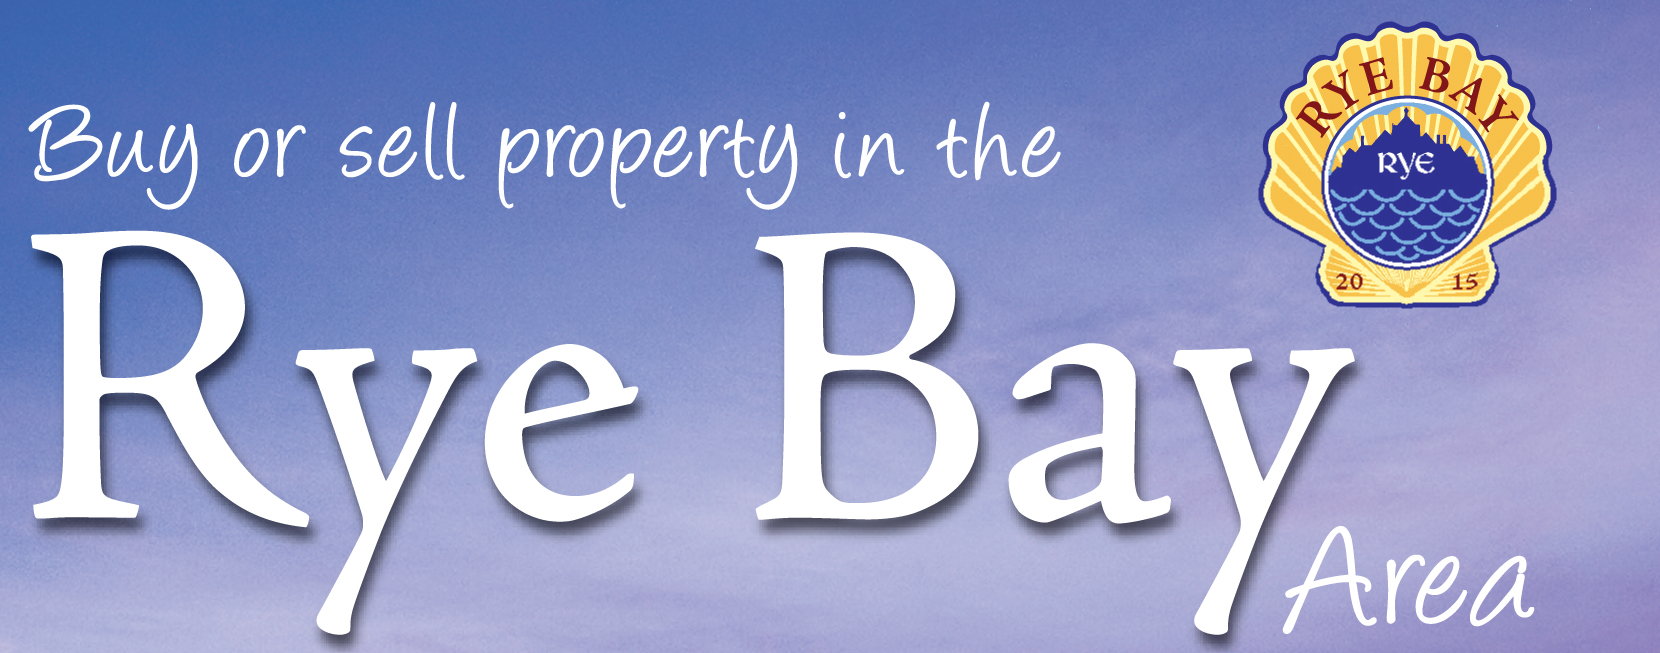 Buy or Sell Property in the Rye Bay Area